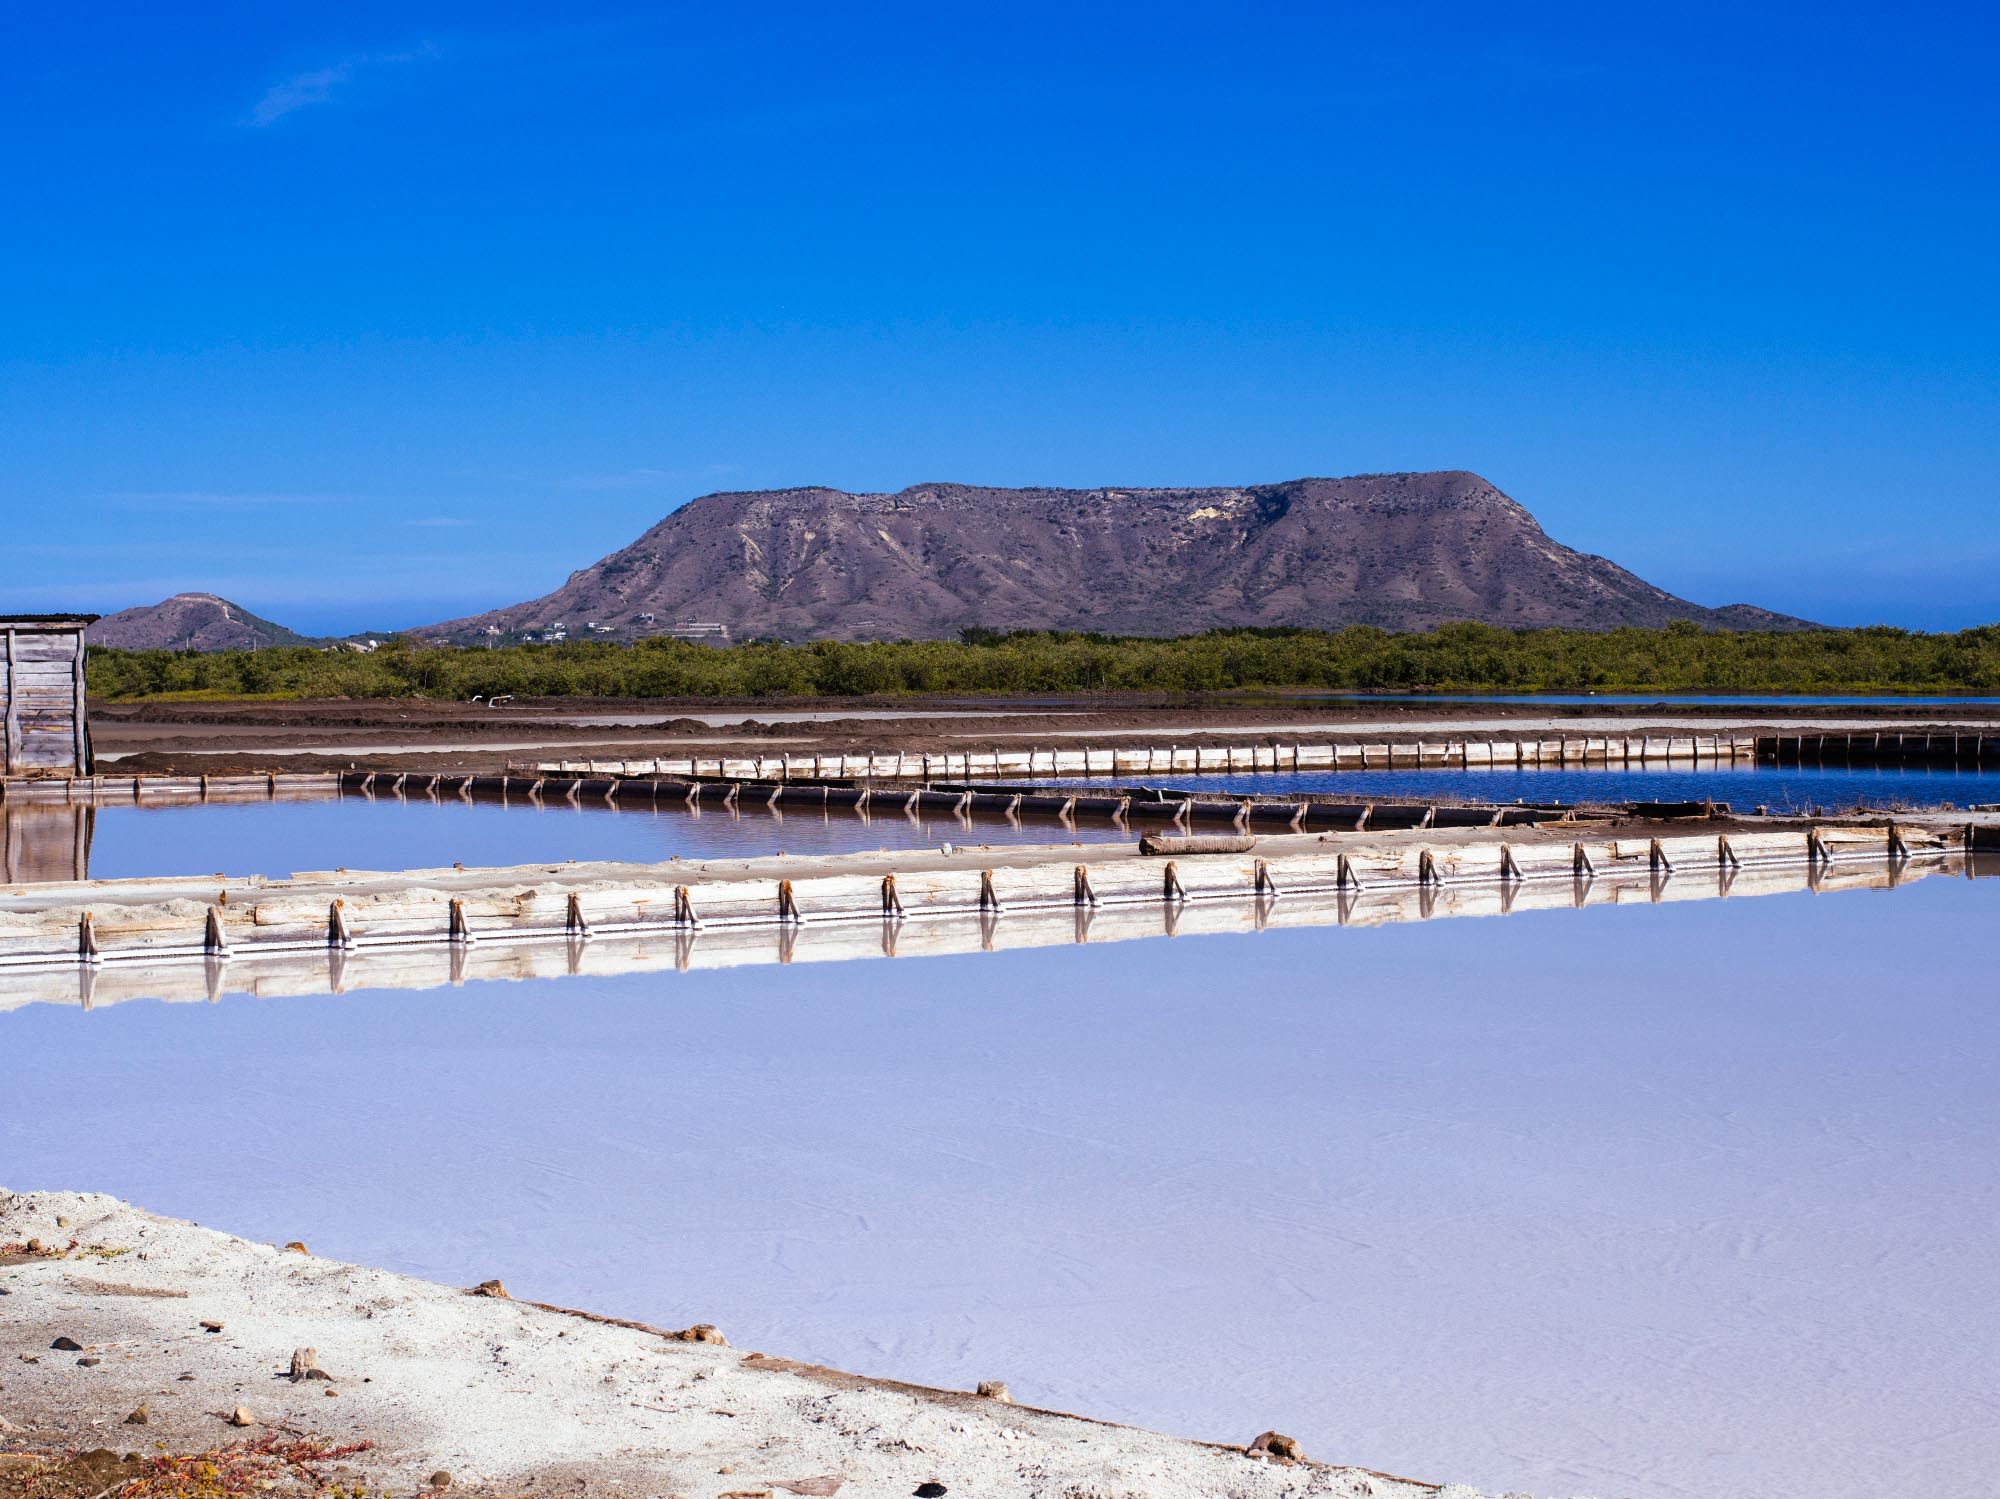 Salt mines in Montecristi with El Morro in the background.  All photography by Joris Hermans.